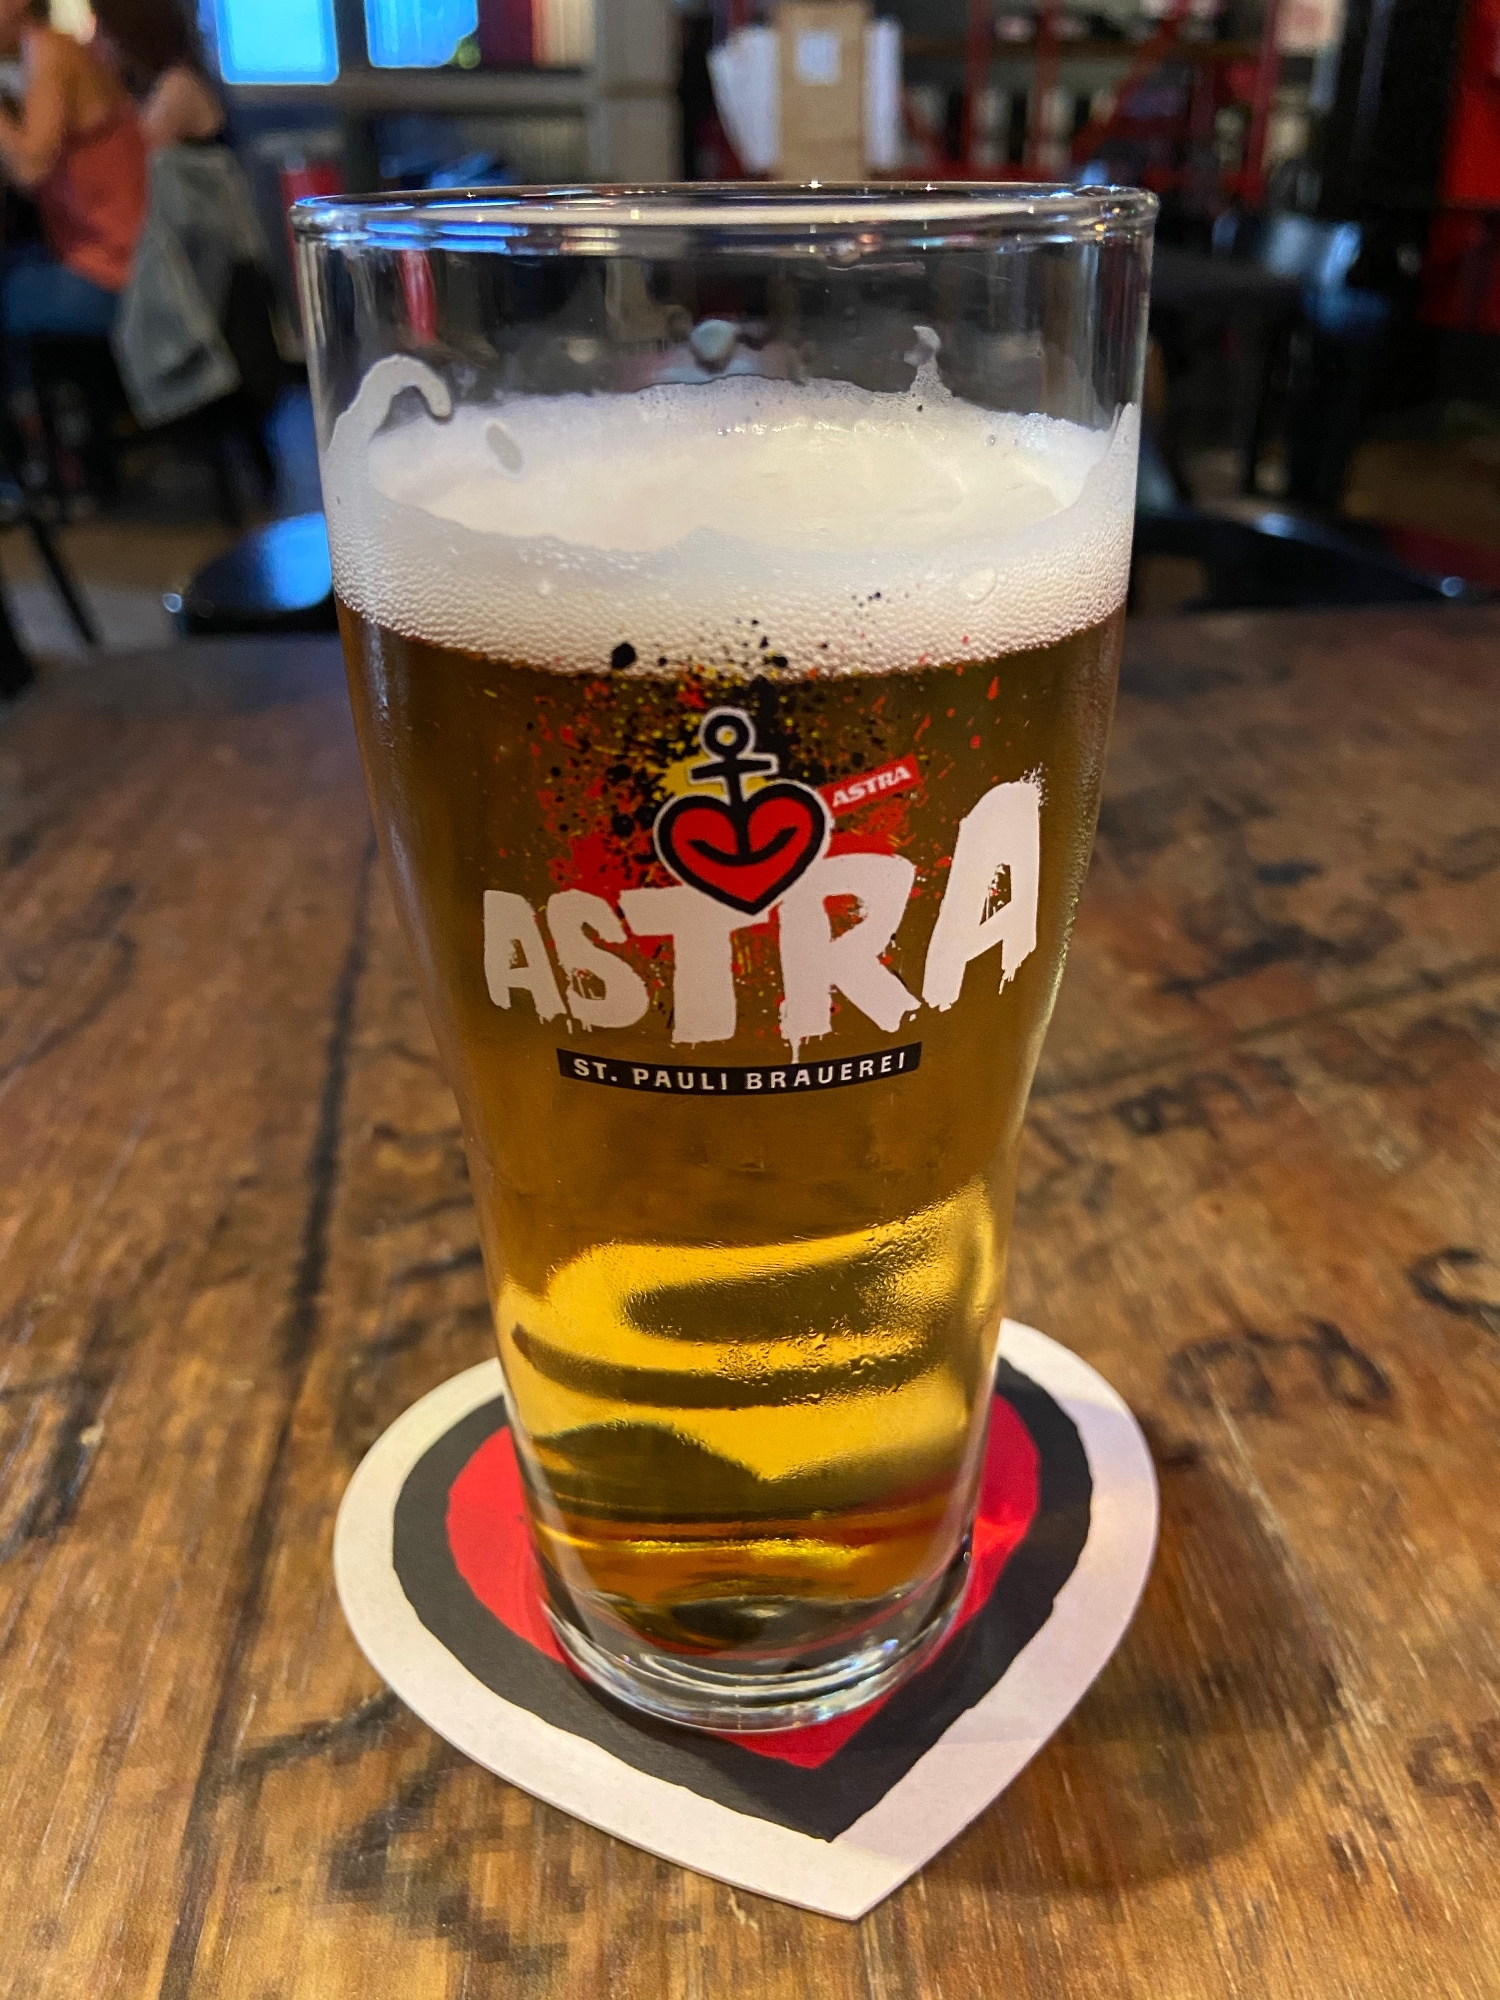 Astra brewery